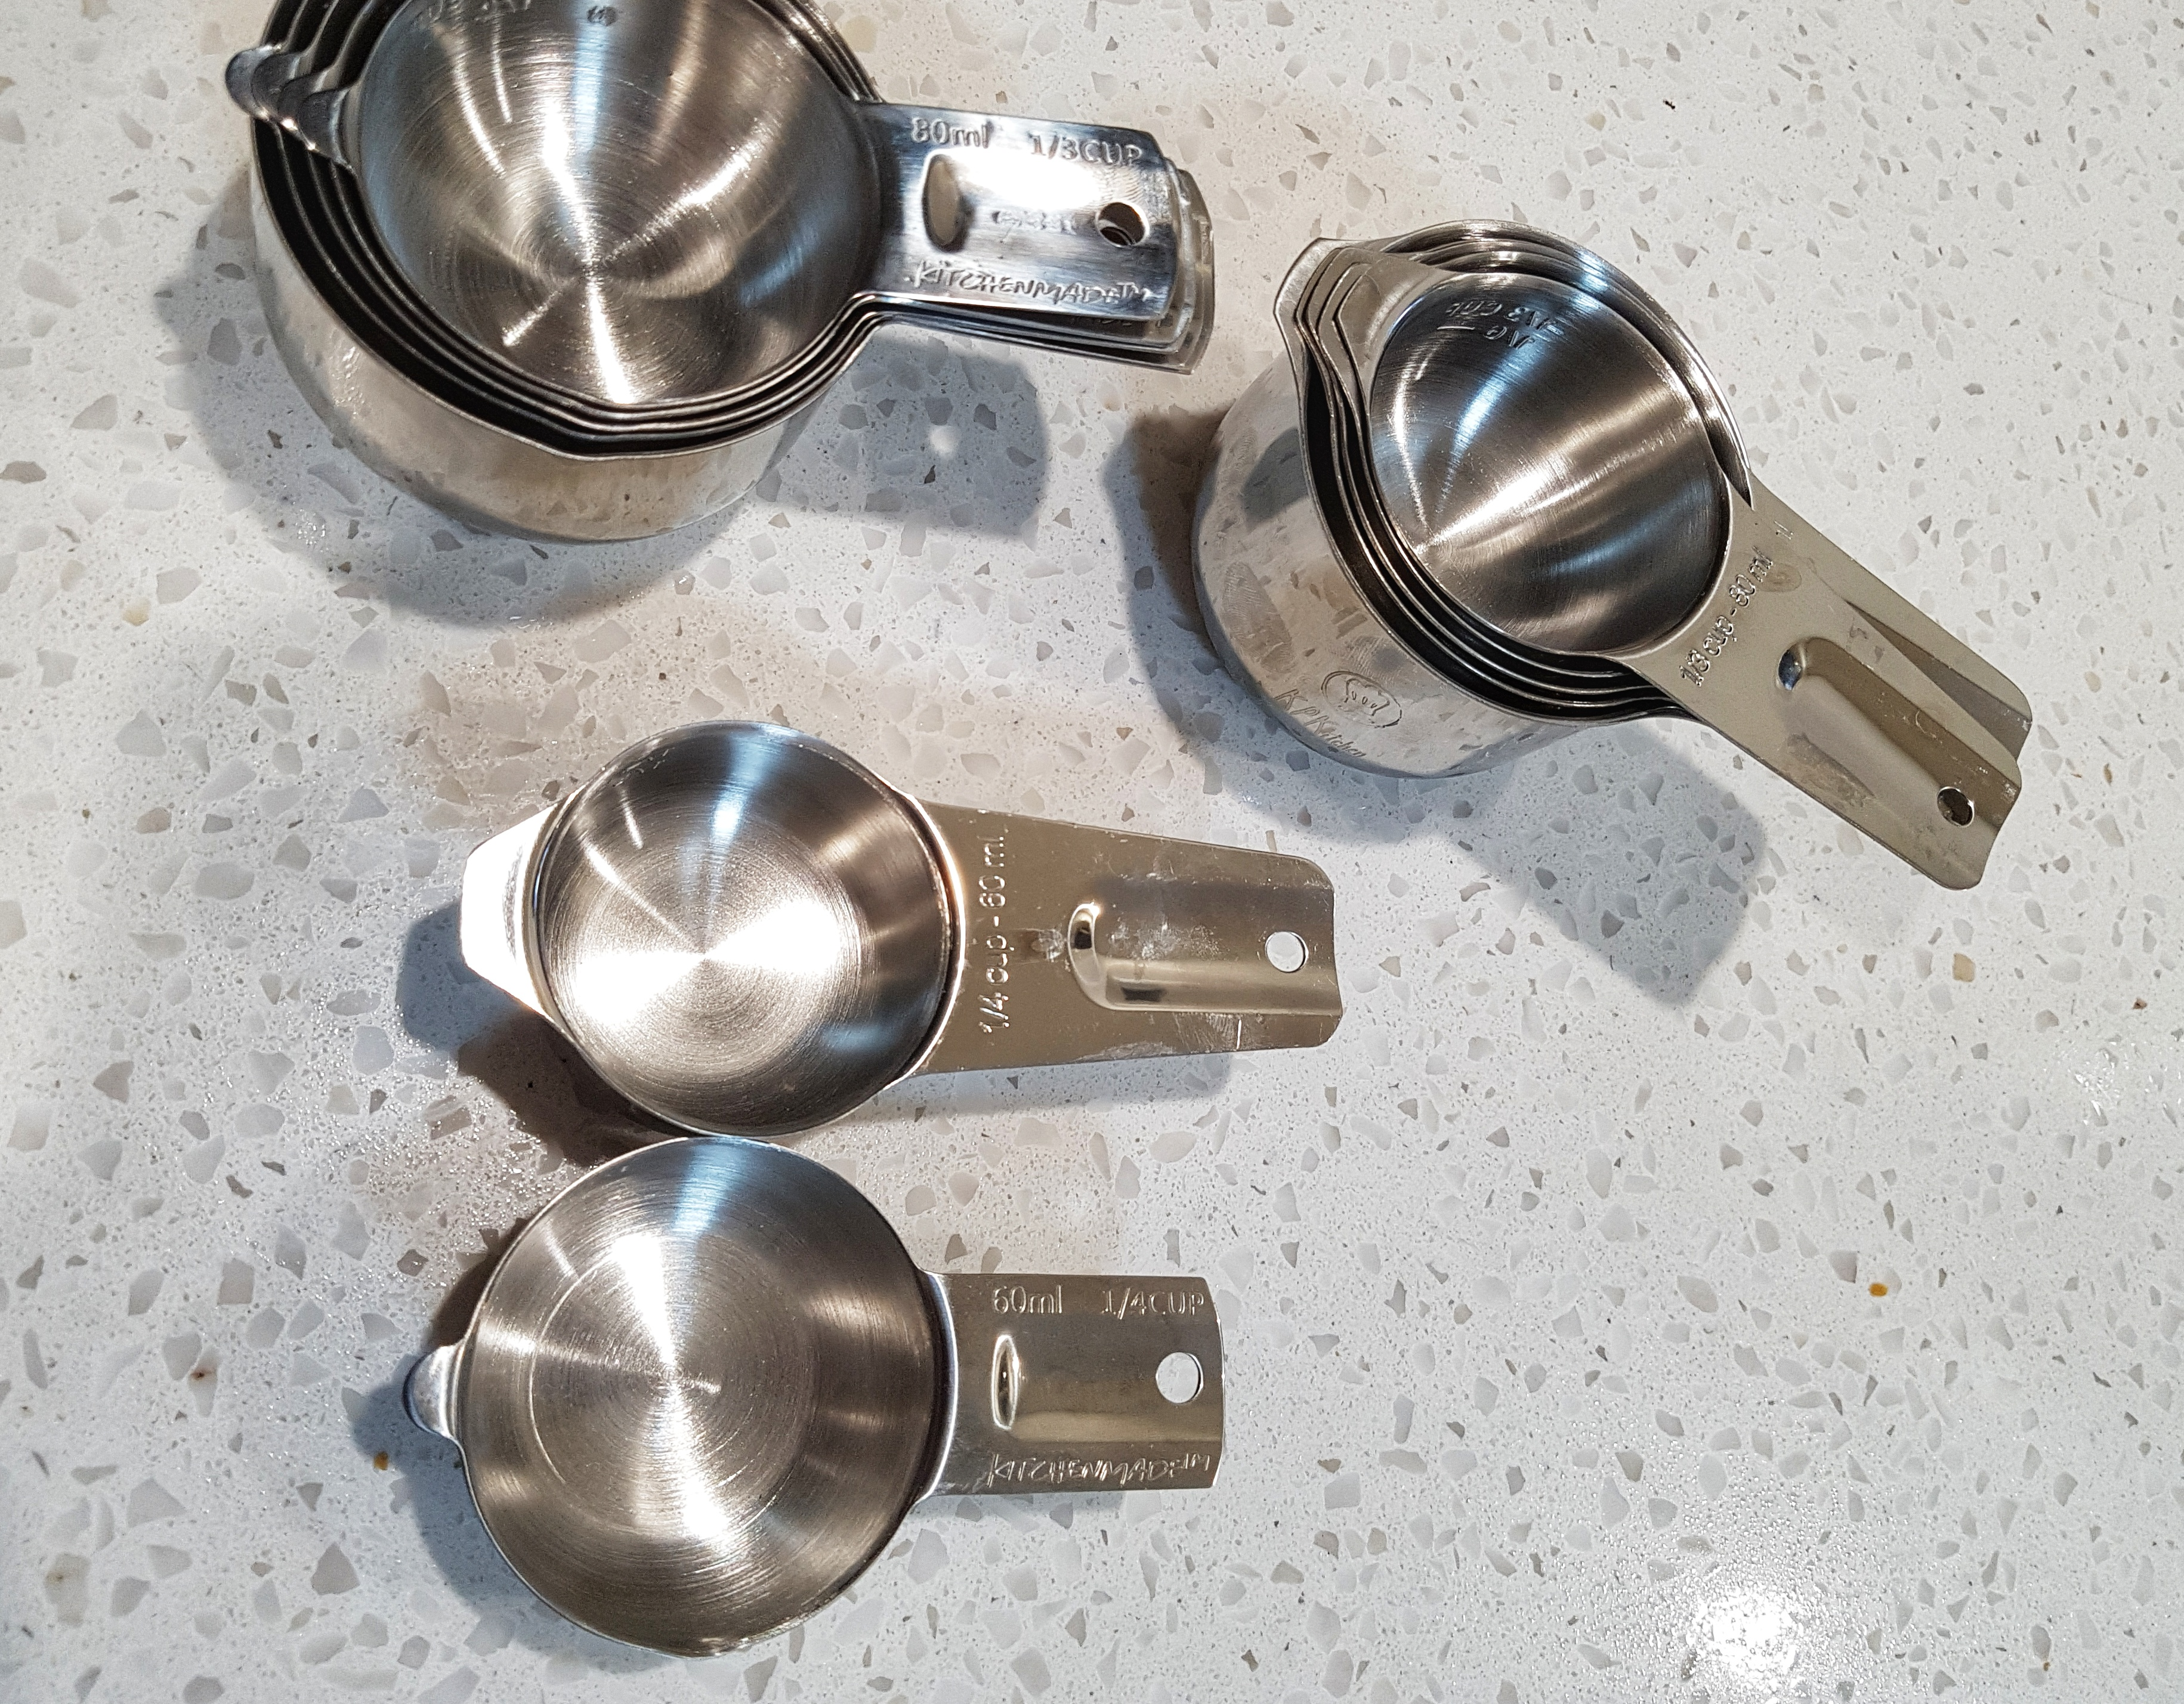 The Easy 1life Cups Compared To CookingGods With Diferent Handle Lengths